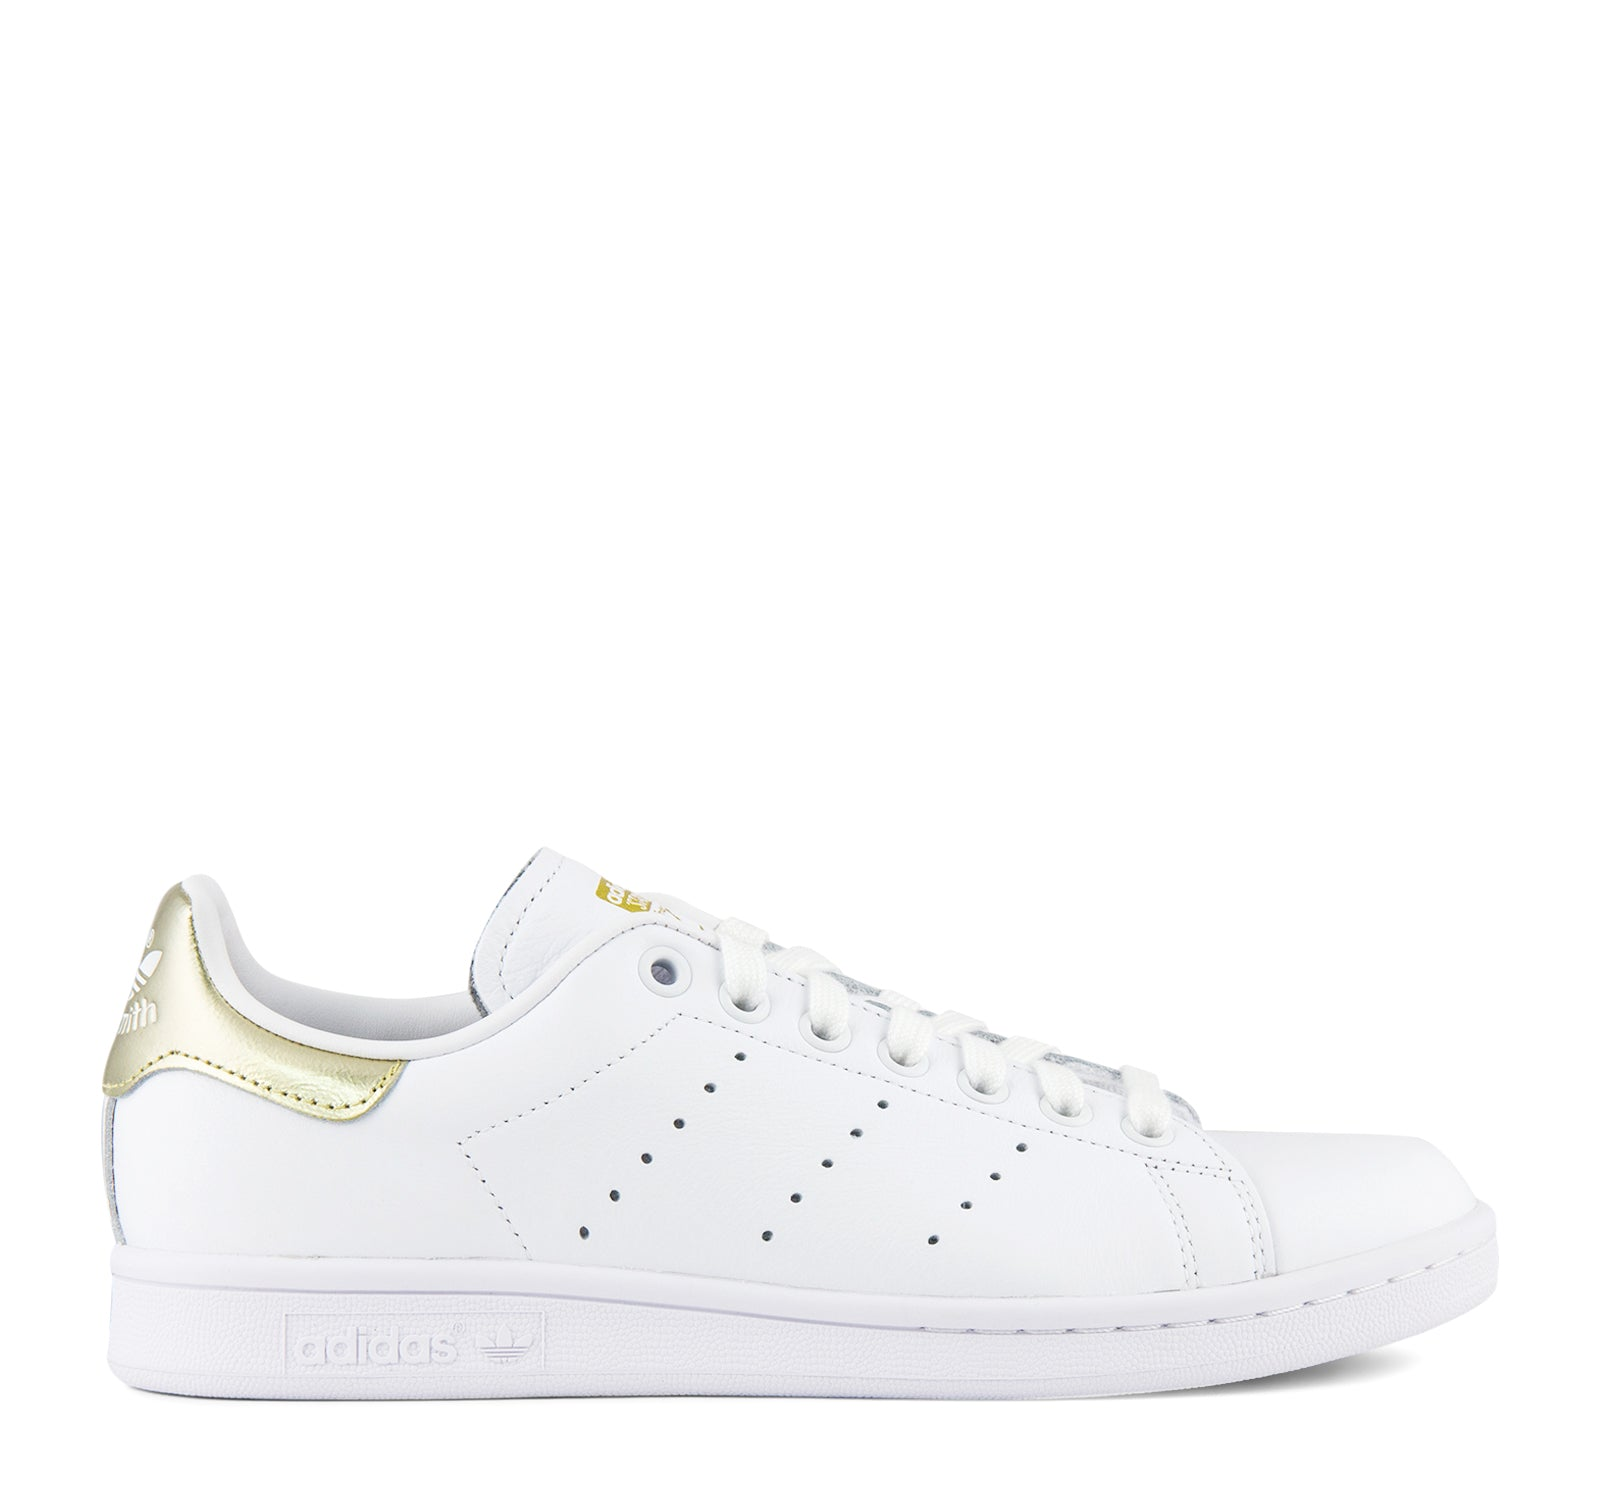 best service 7427b 82c1a Adidas Stan Smith W EE8836 Women's Sneaker in White and Gold ...